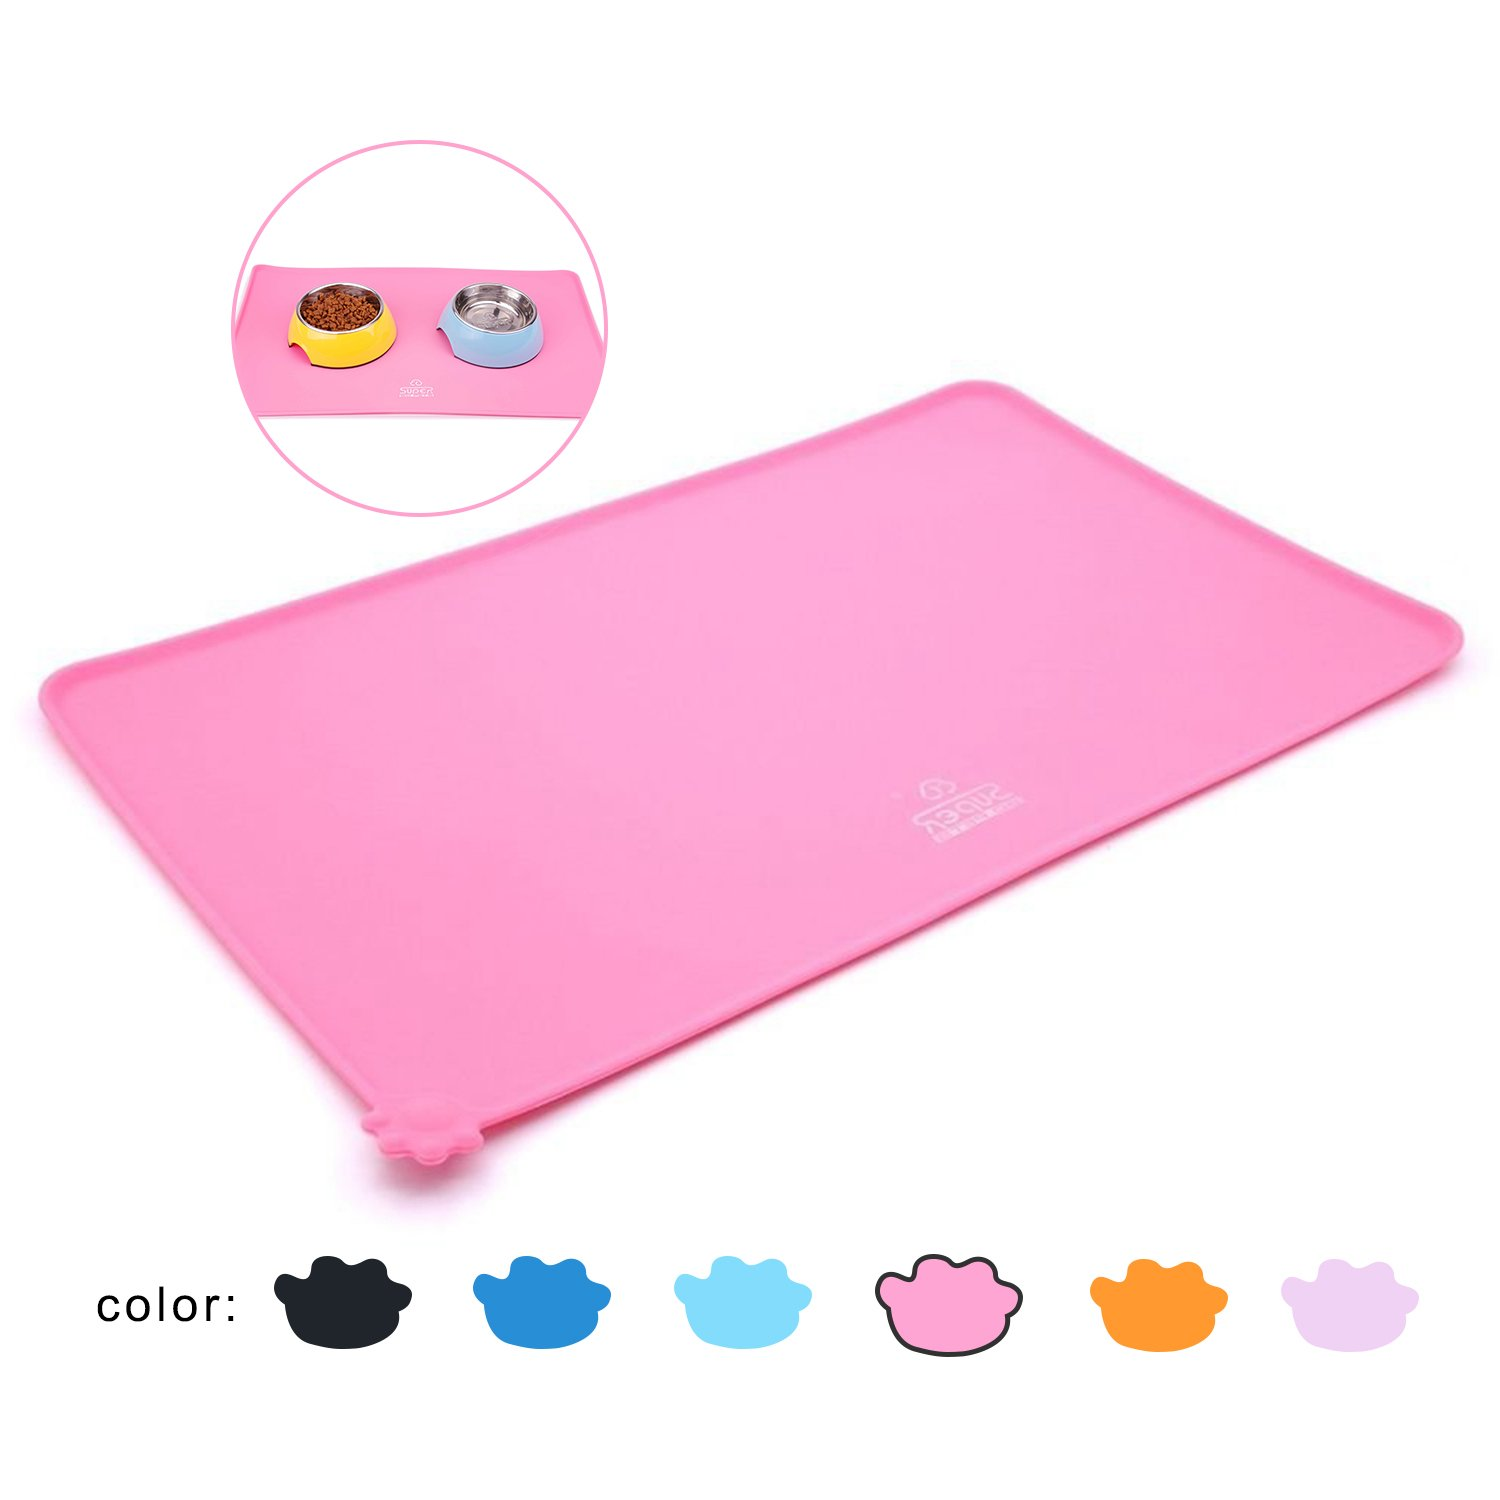 SuperDesign Square Pet Food Mat Made of Premium FDA Grade Silicone Pink Waterproof Non-slip Non-spill Easy to Clean Keep Floor Tidy